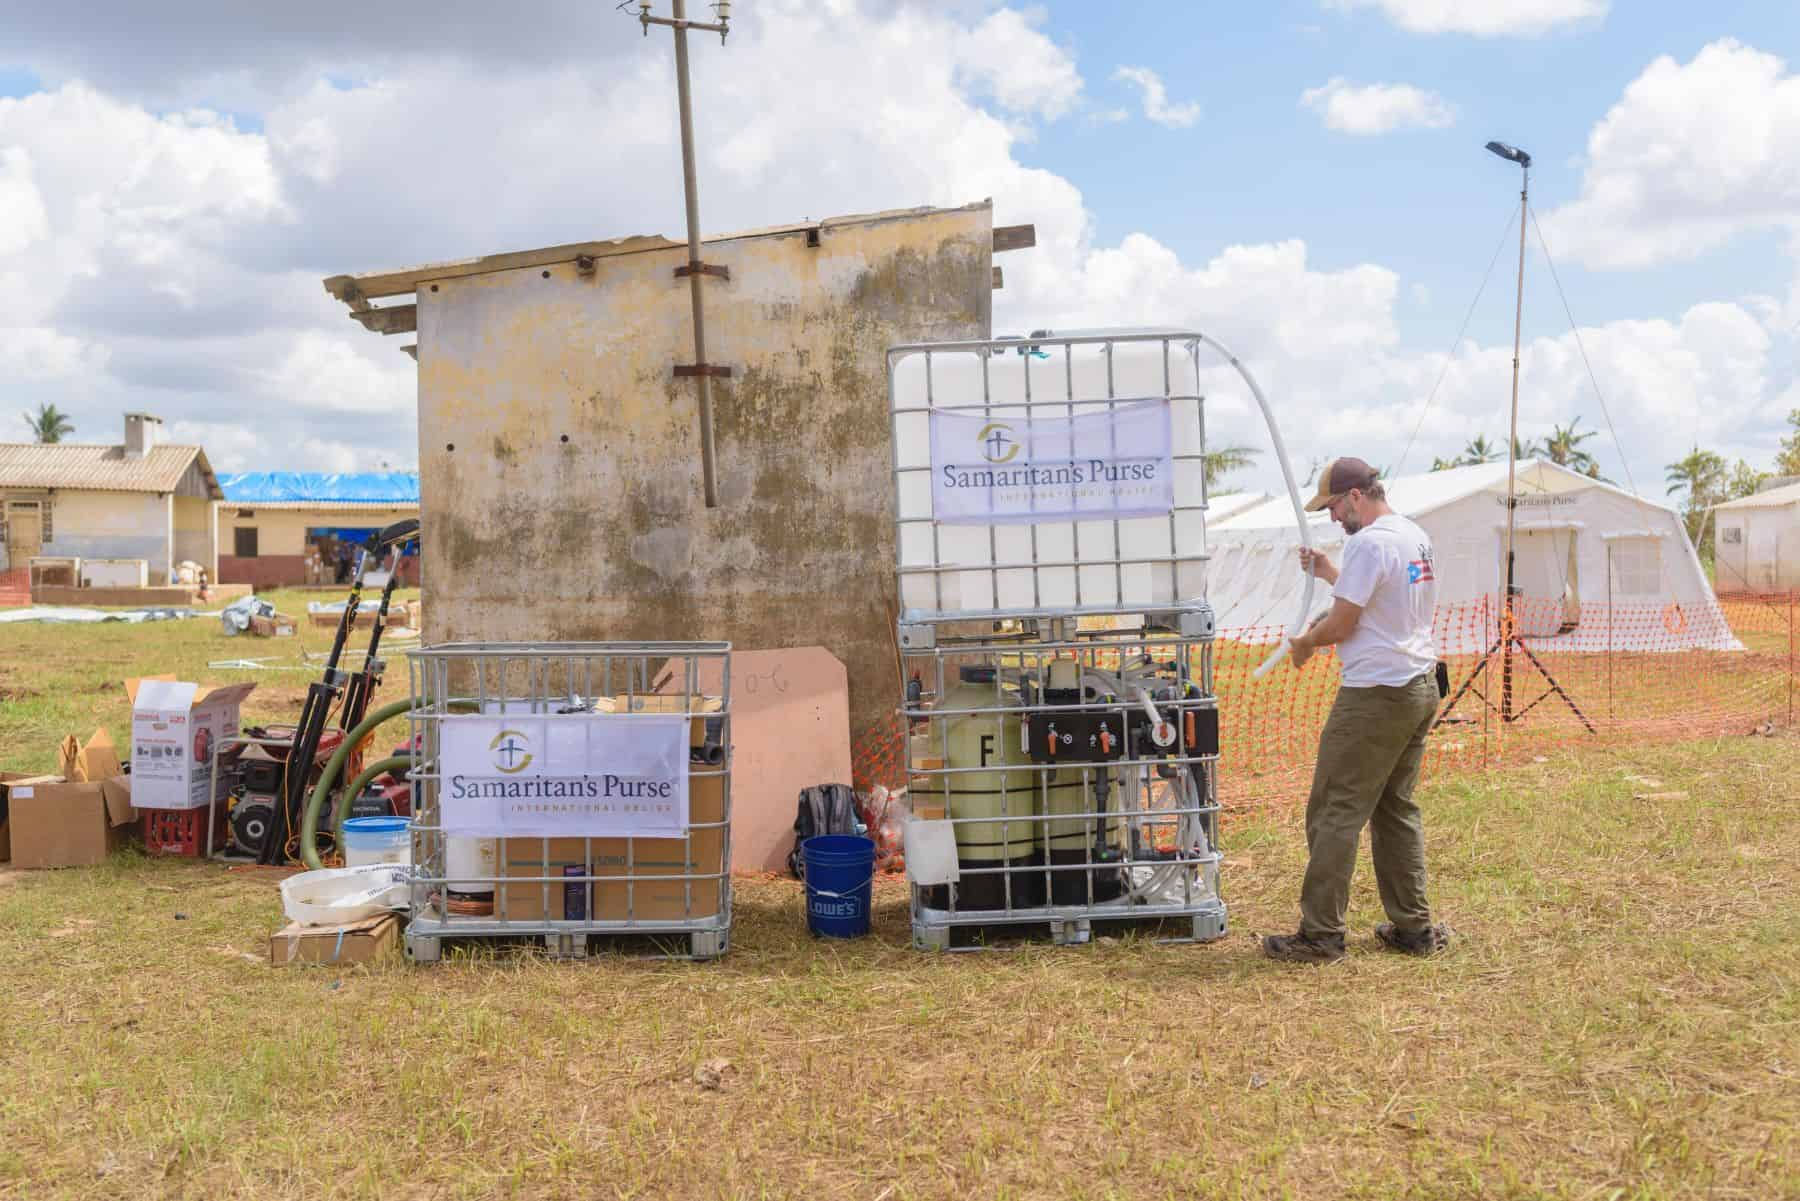 Canadian, Peter Roebuck, sets up a water treatment system in Mozambique. Peter is from Ottawa and is serving as the WASH (Water, Sanitation & Hygiene) lead for the team. The Emergency Field Hospital can be seen in the background.